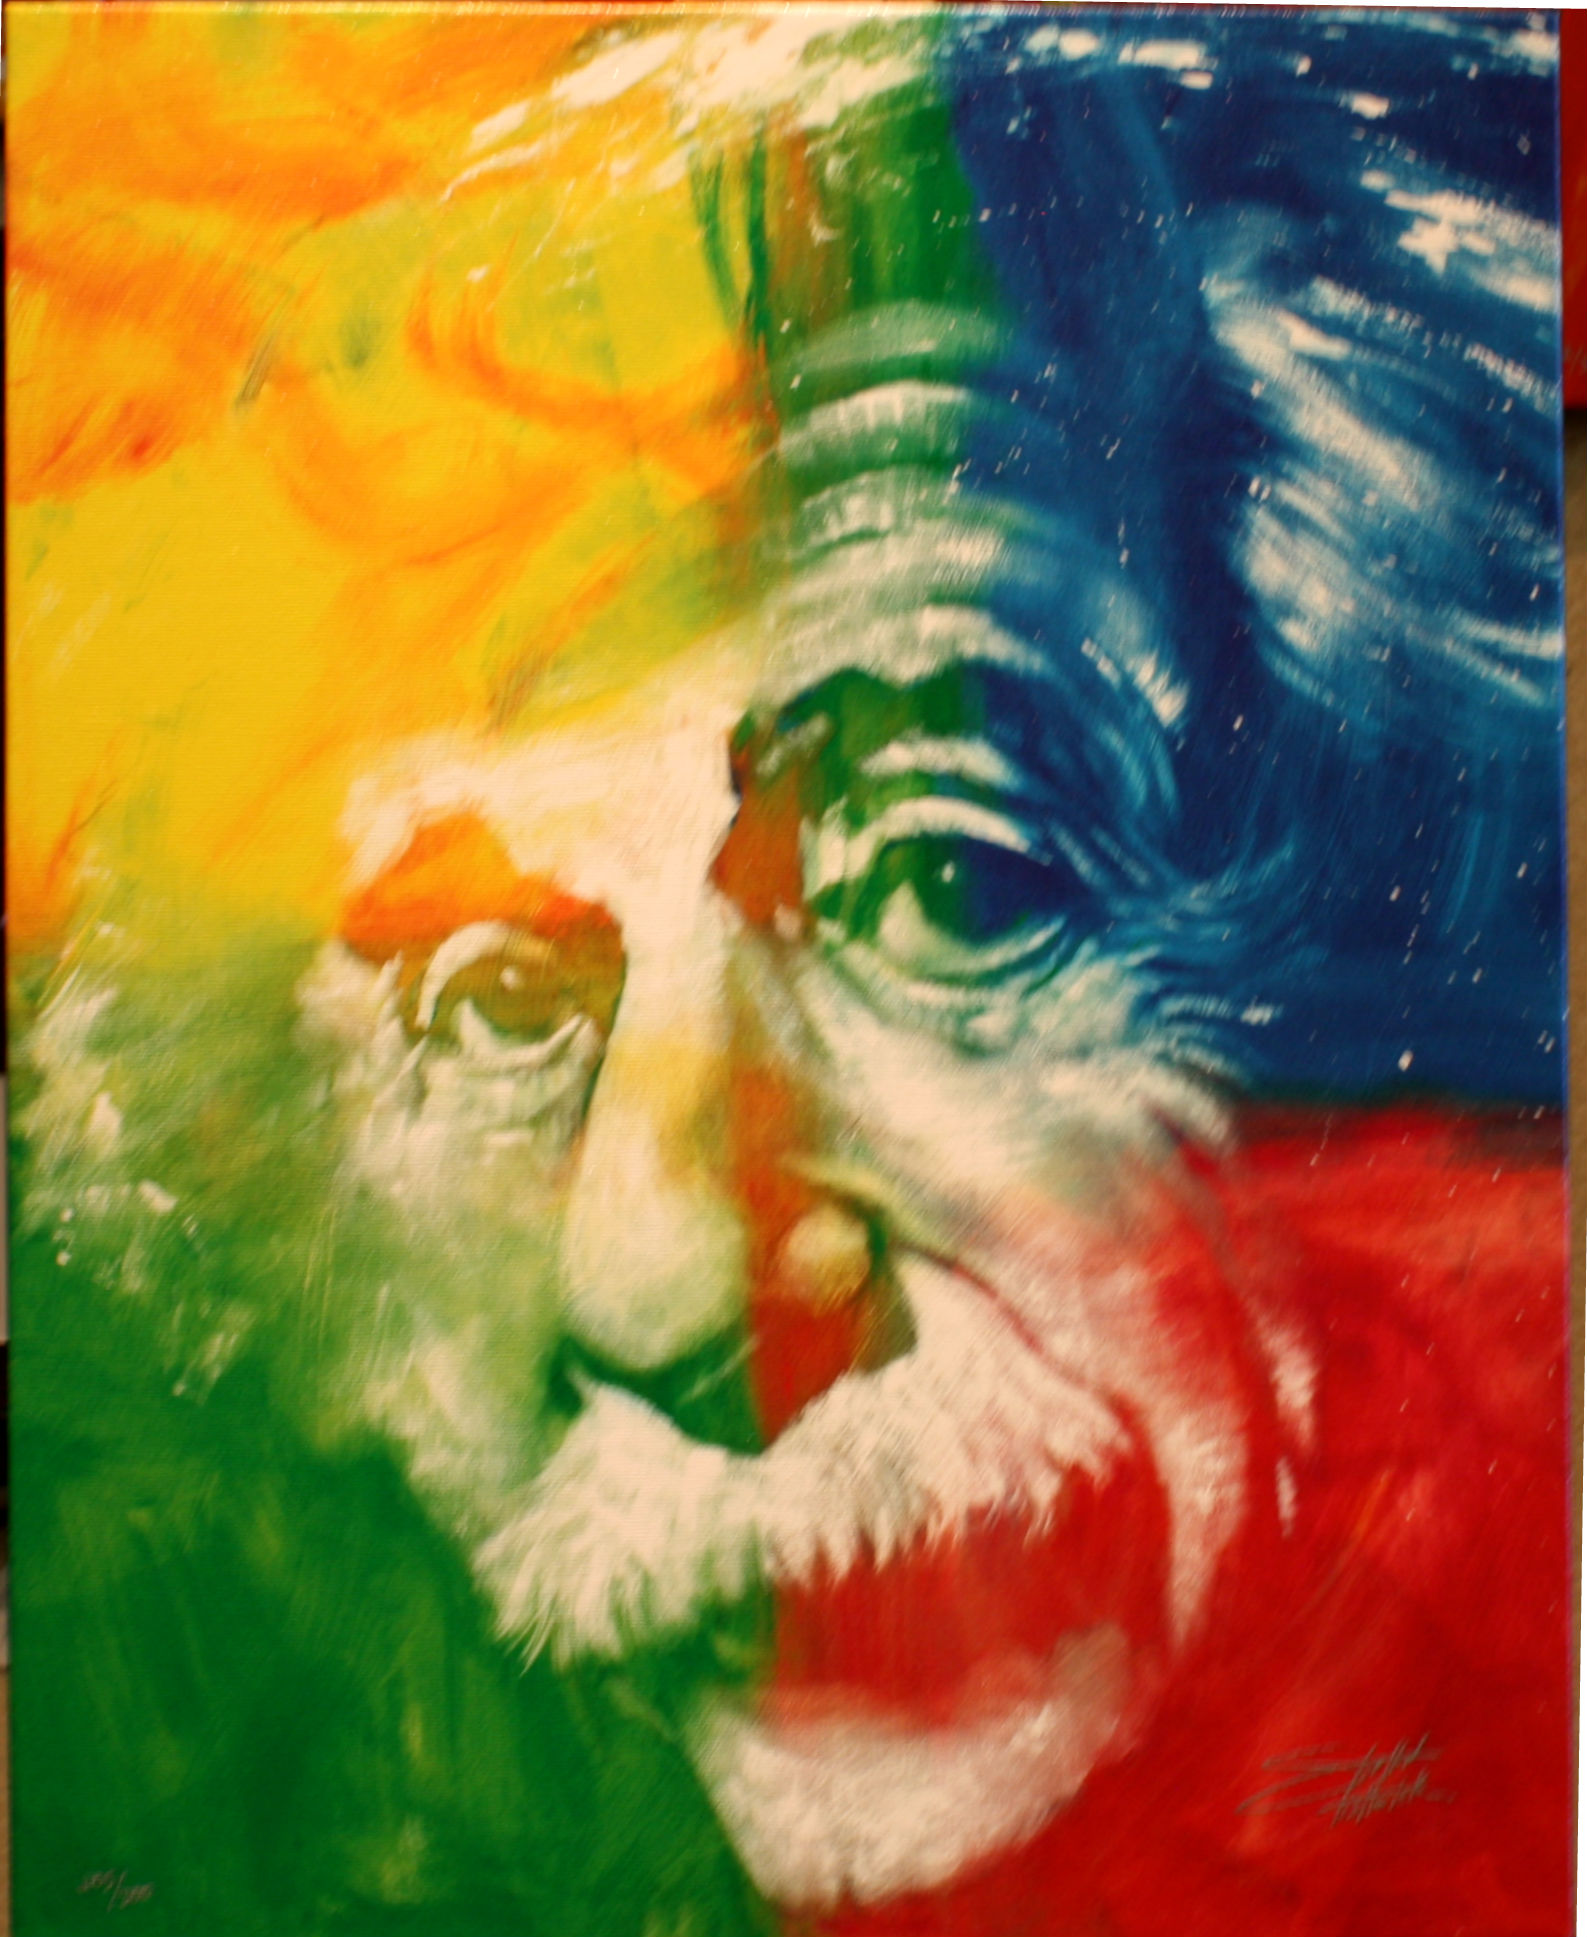 ART4: EINSTEIN by STEPHEN FISWICK